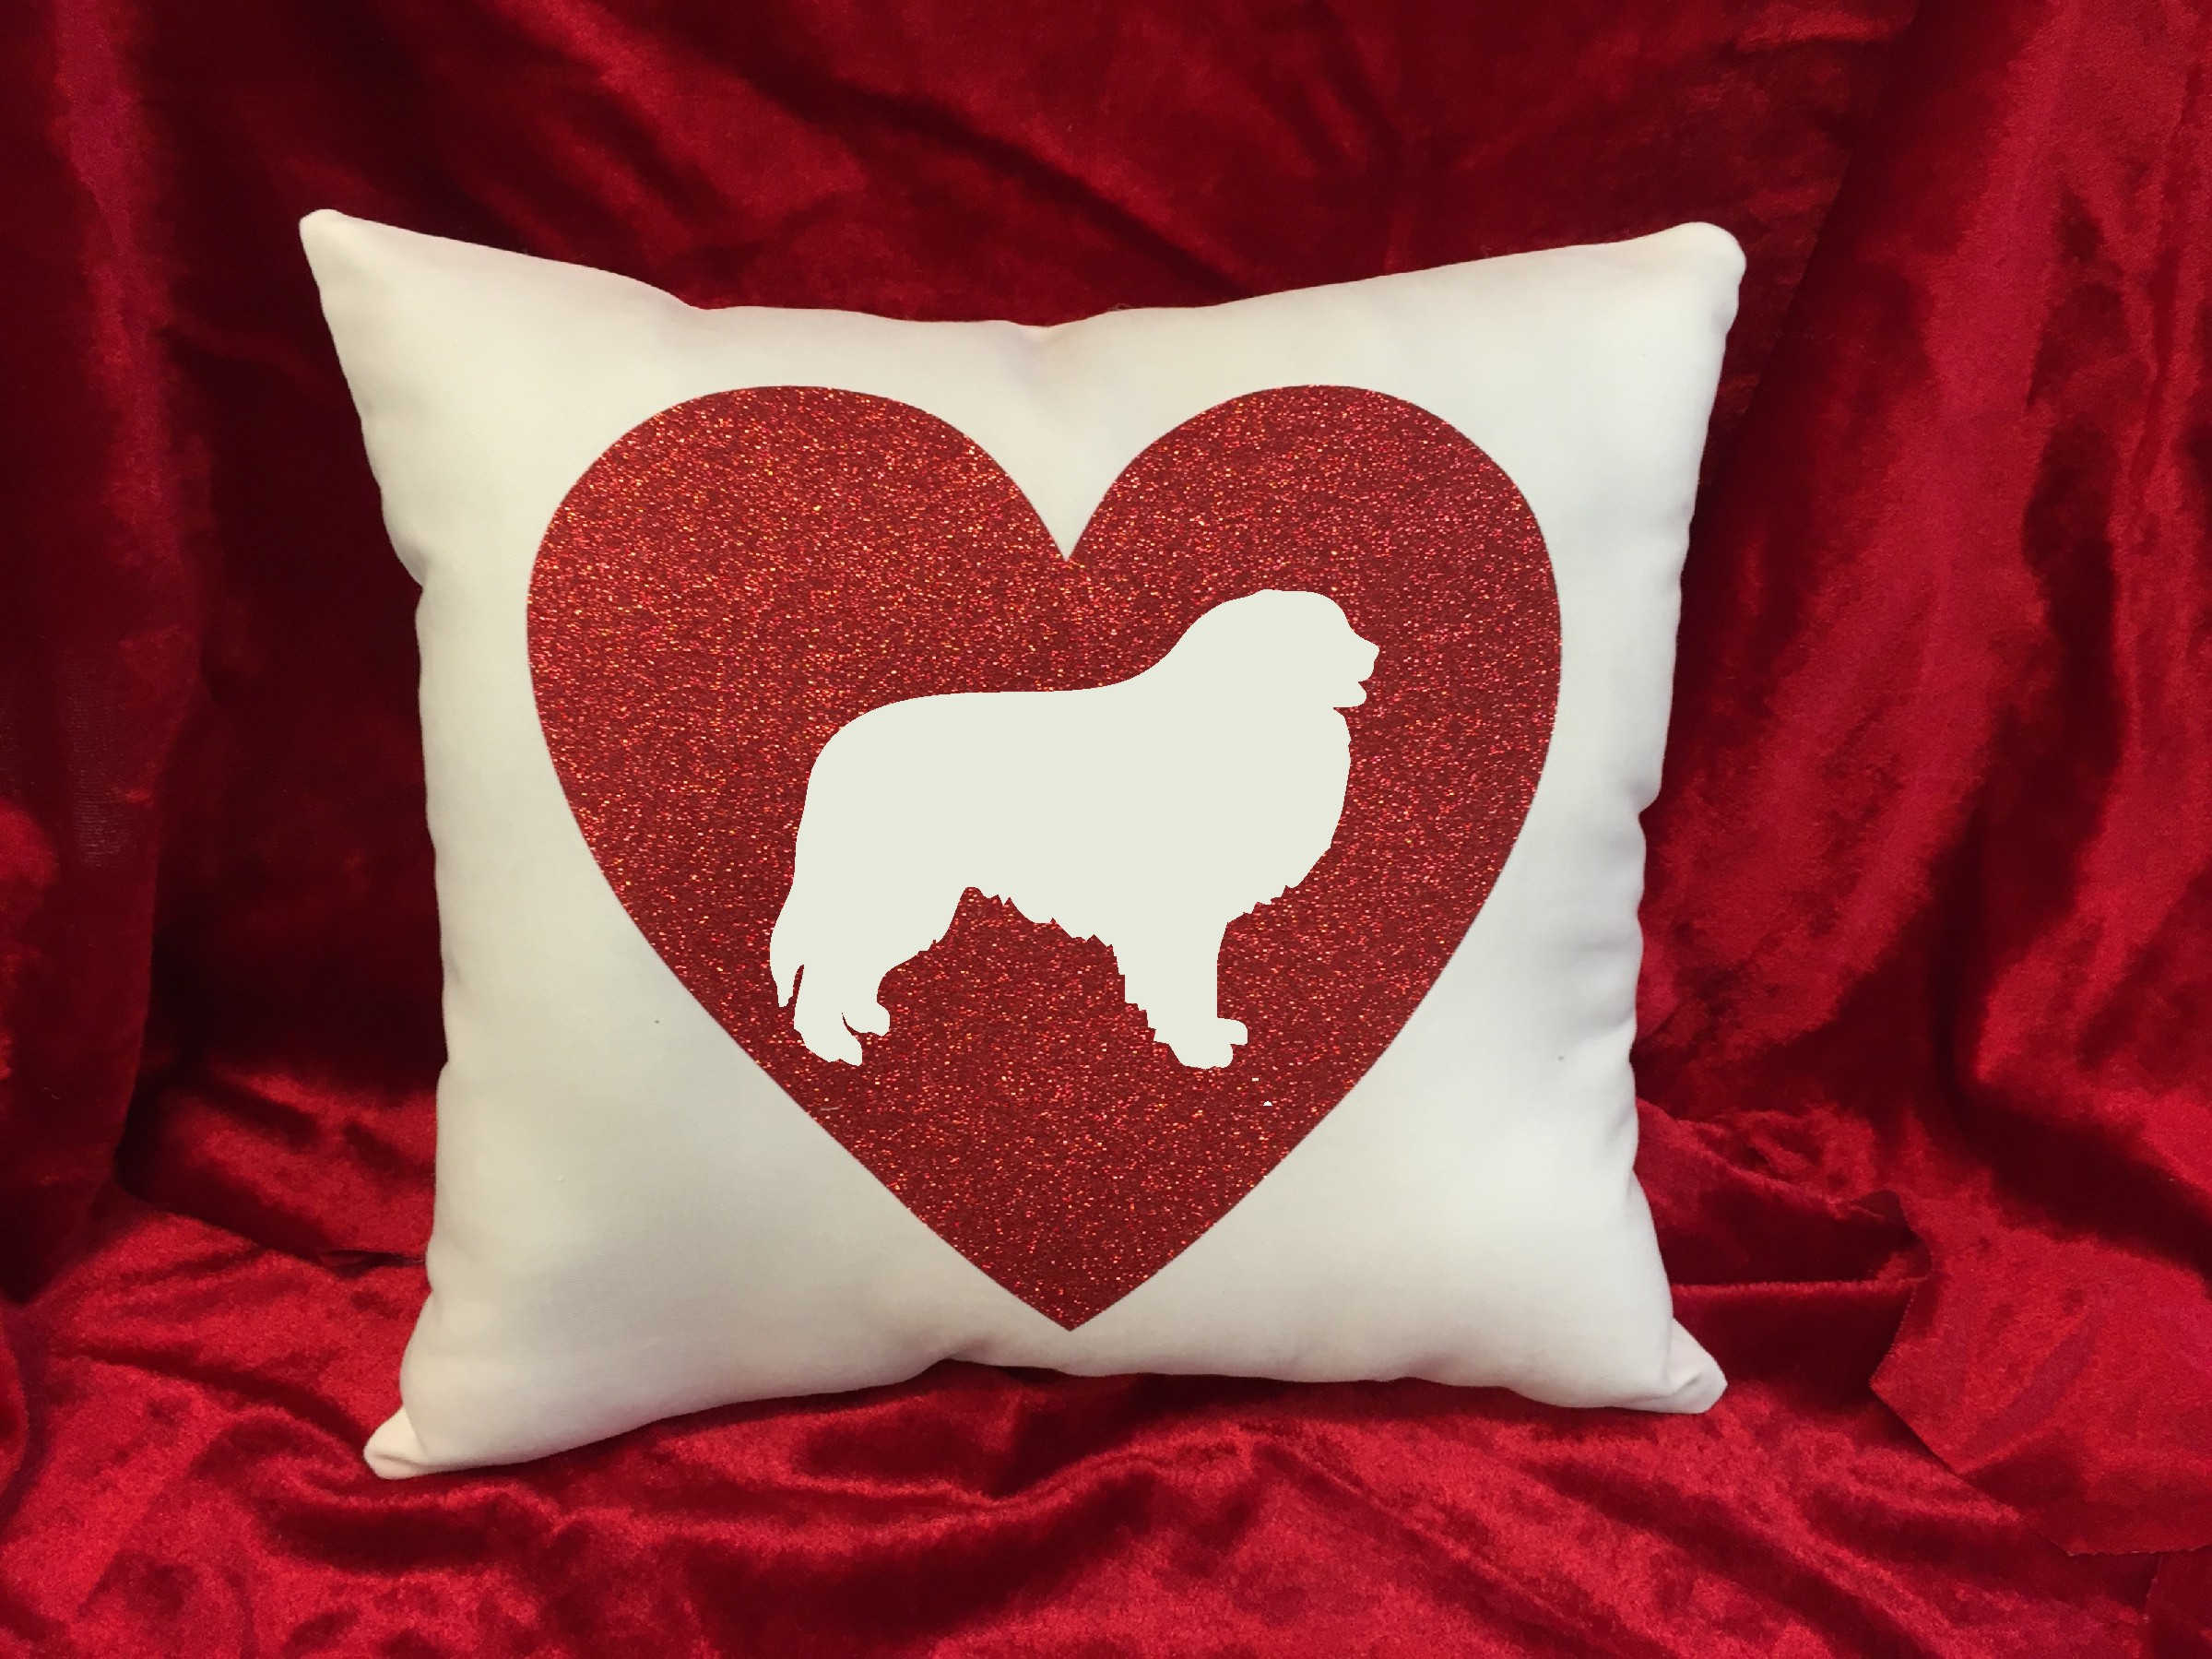 Dogs - Throw Pillow - Great Pyrenees